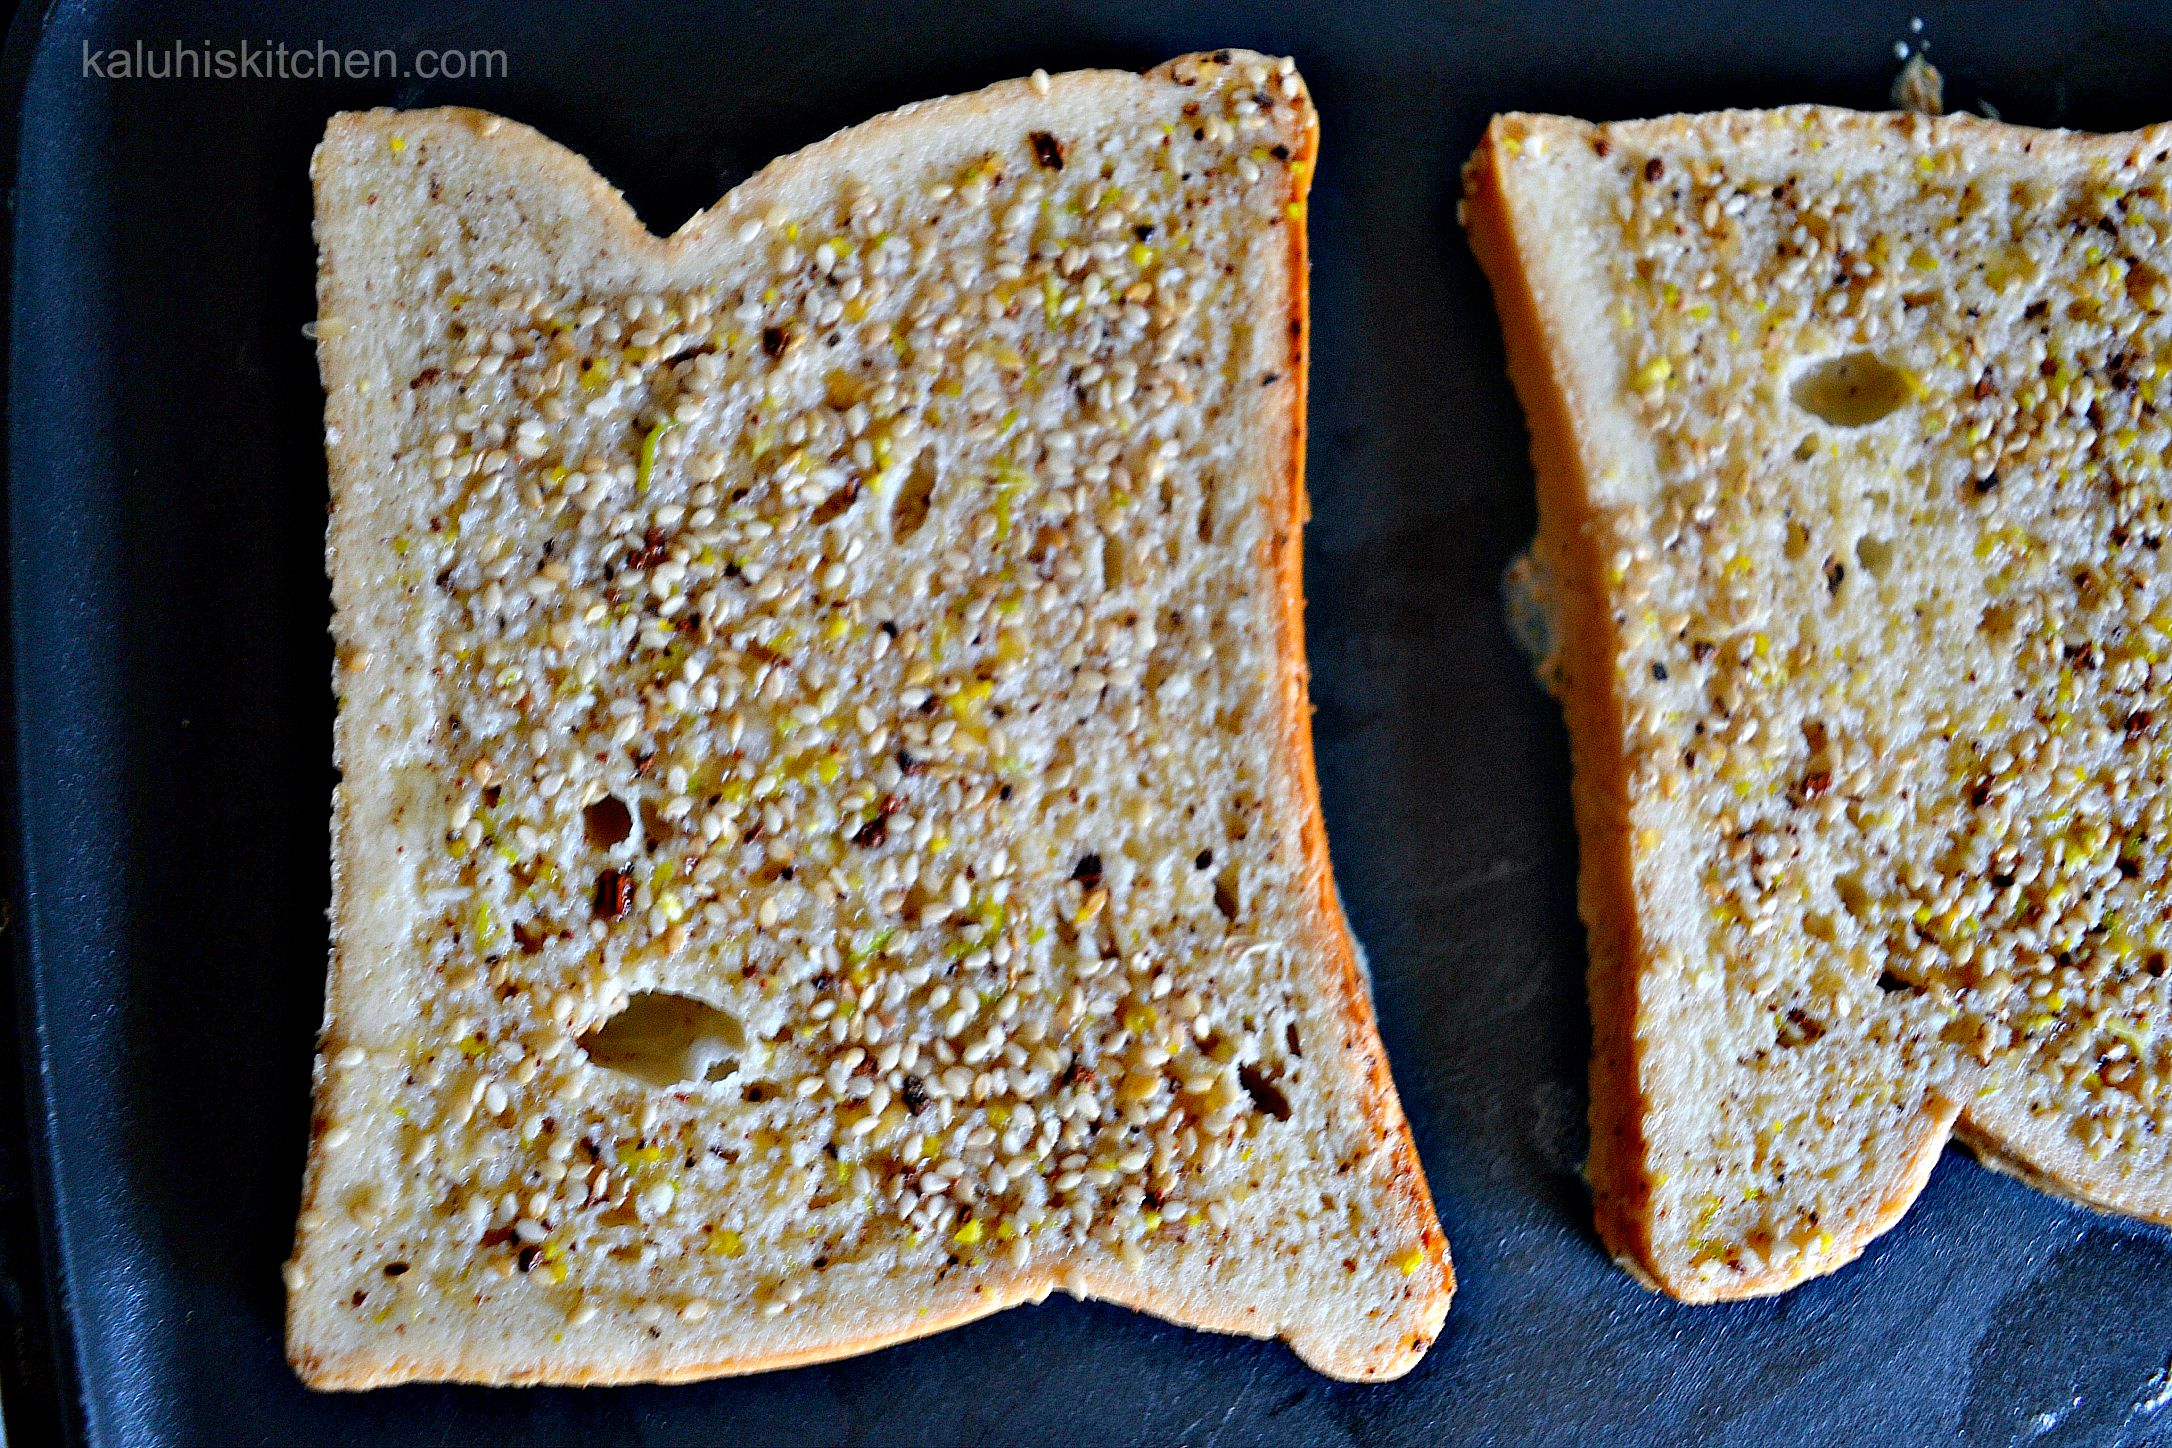 the sesame seeds provide texture and nuttiness to the french toast. They will remain on the surface while the rest will sink into the bread_kaluhiskitchen.com